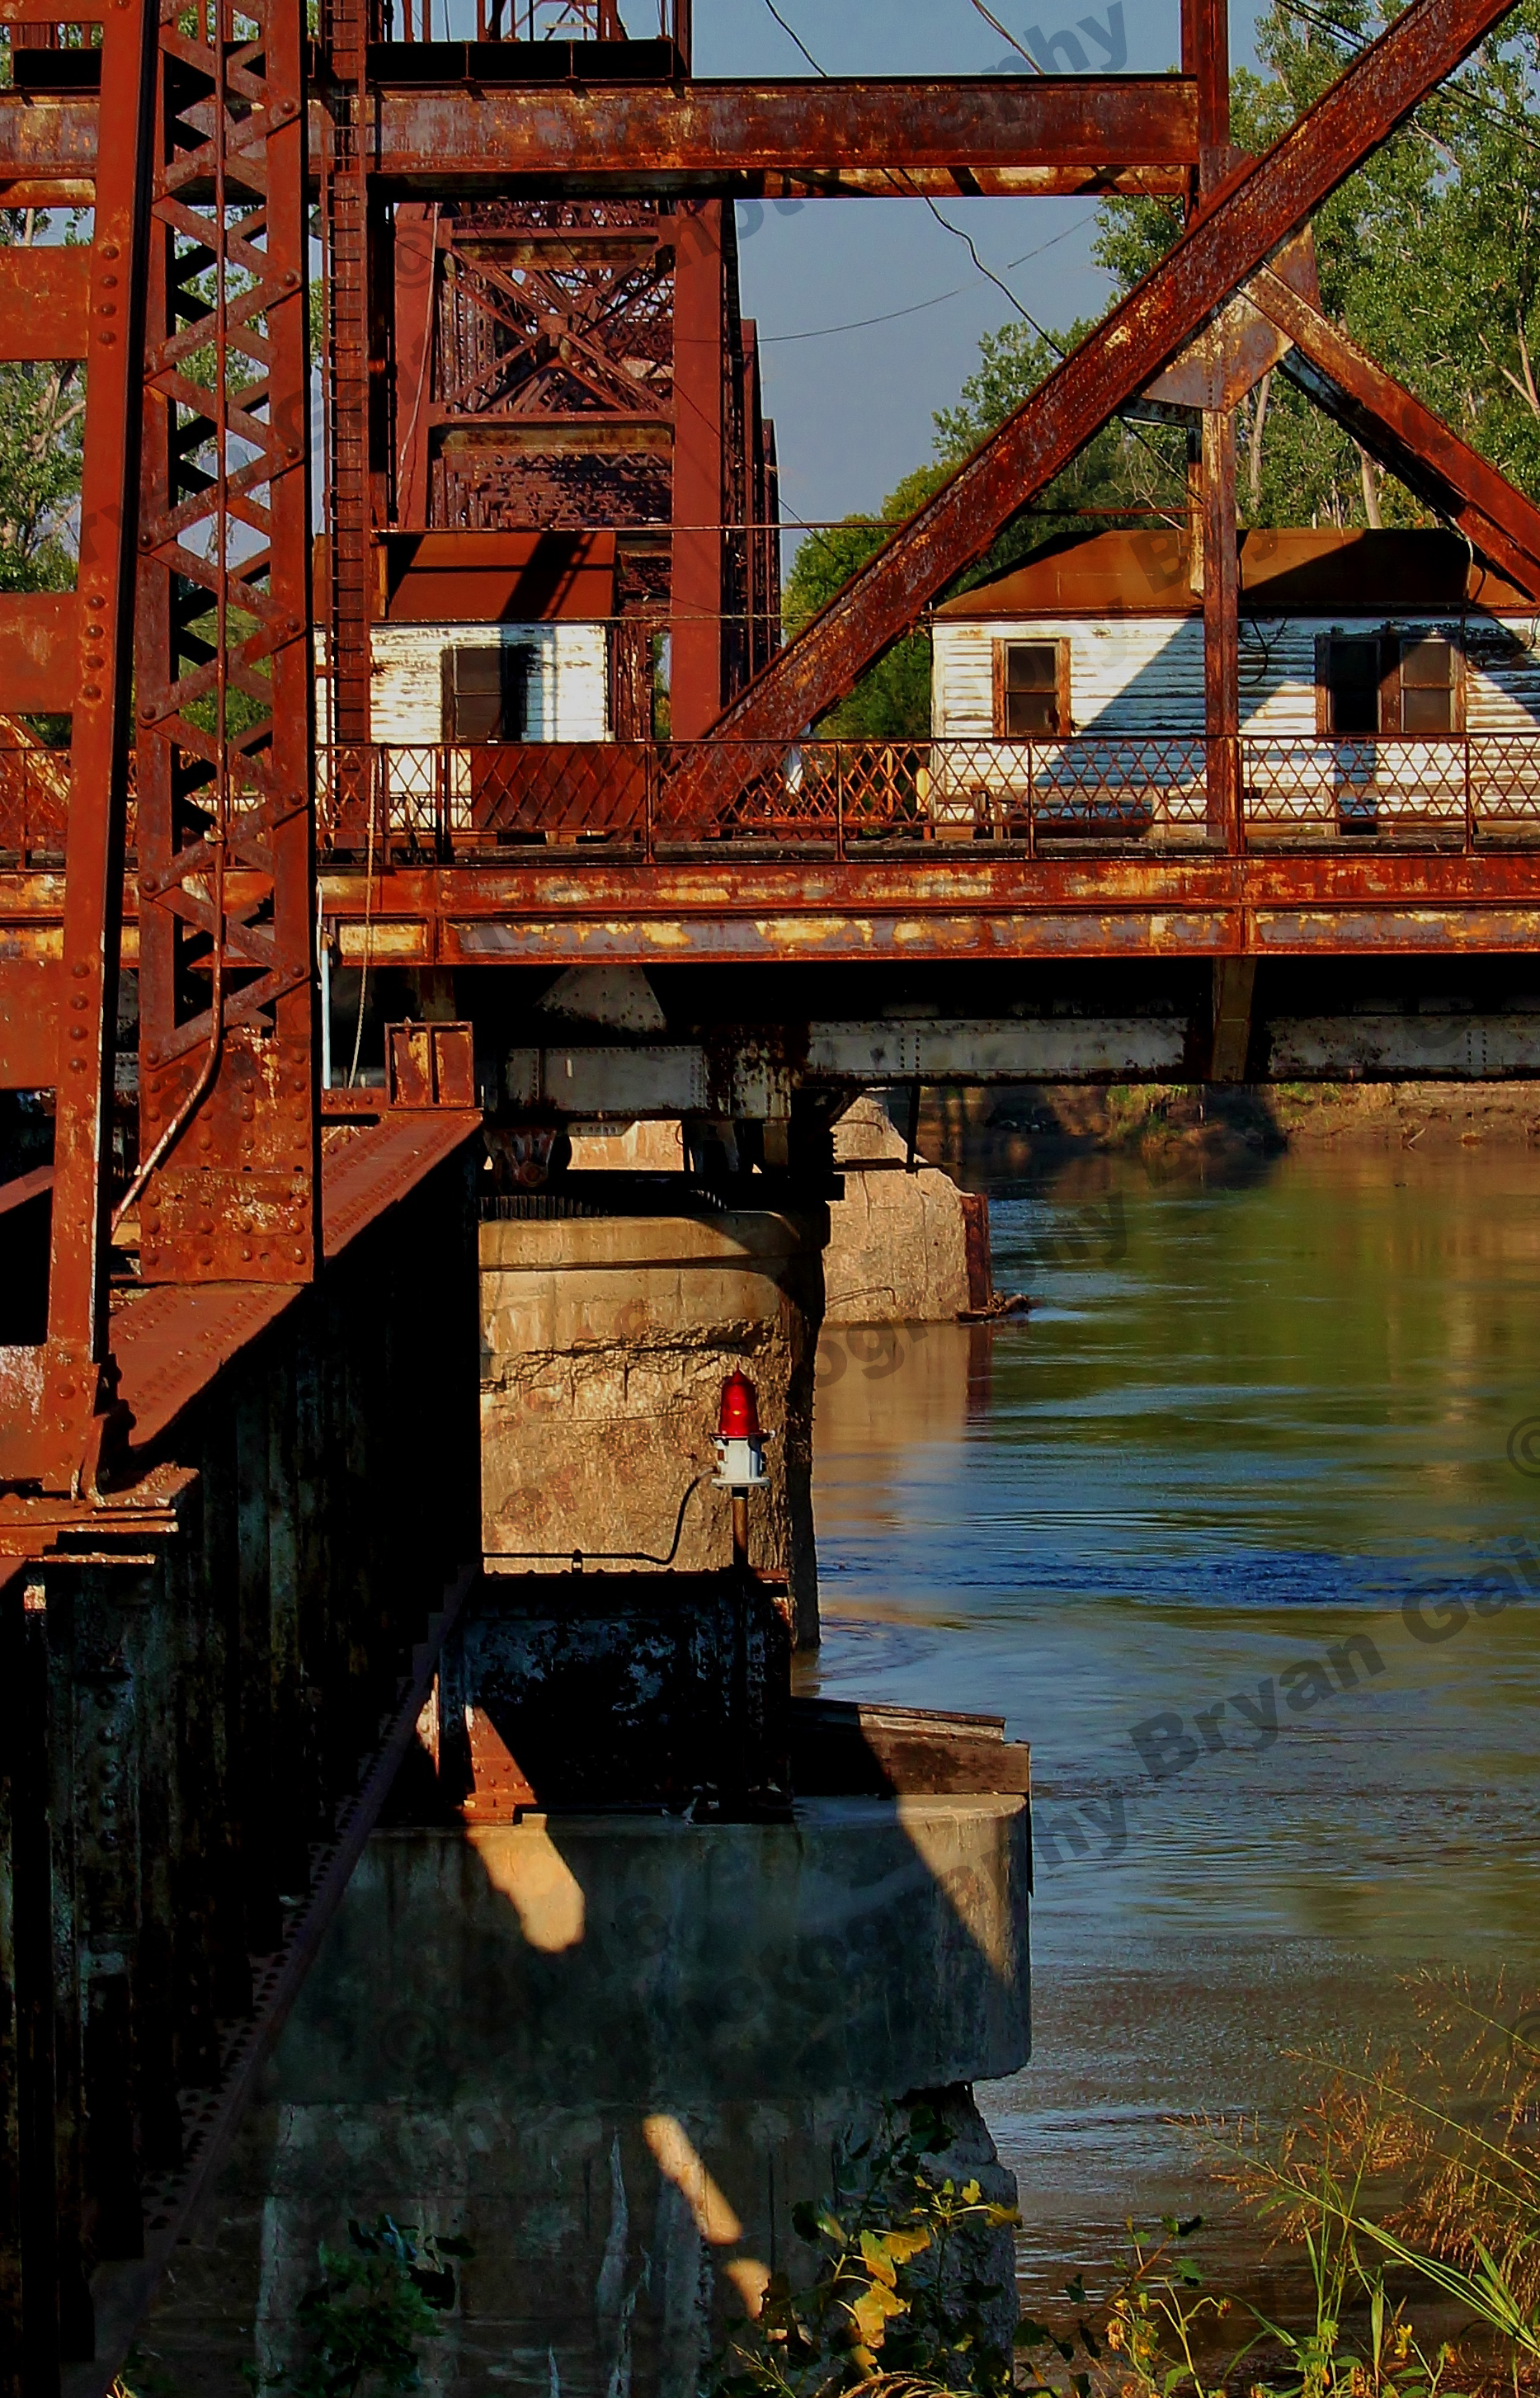 St Joseph Railroad Bridge